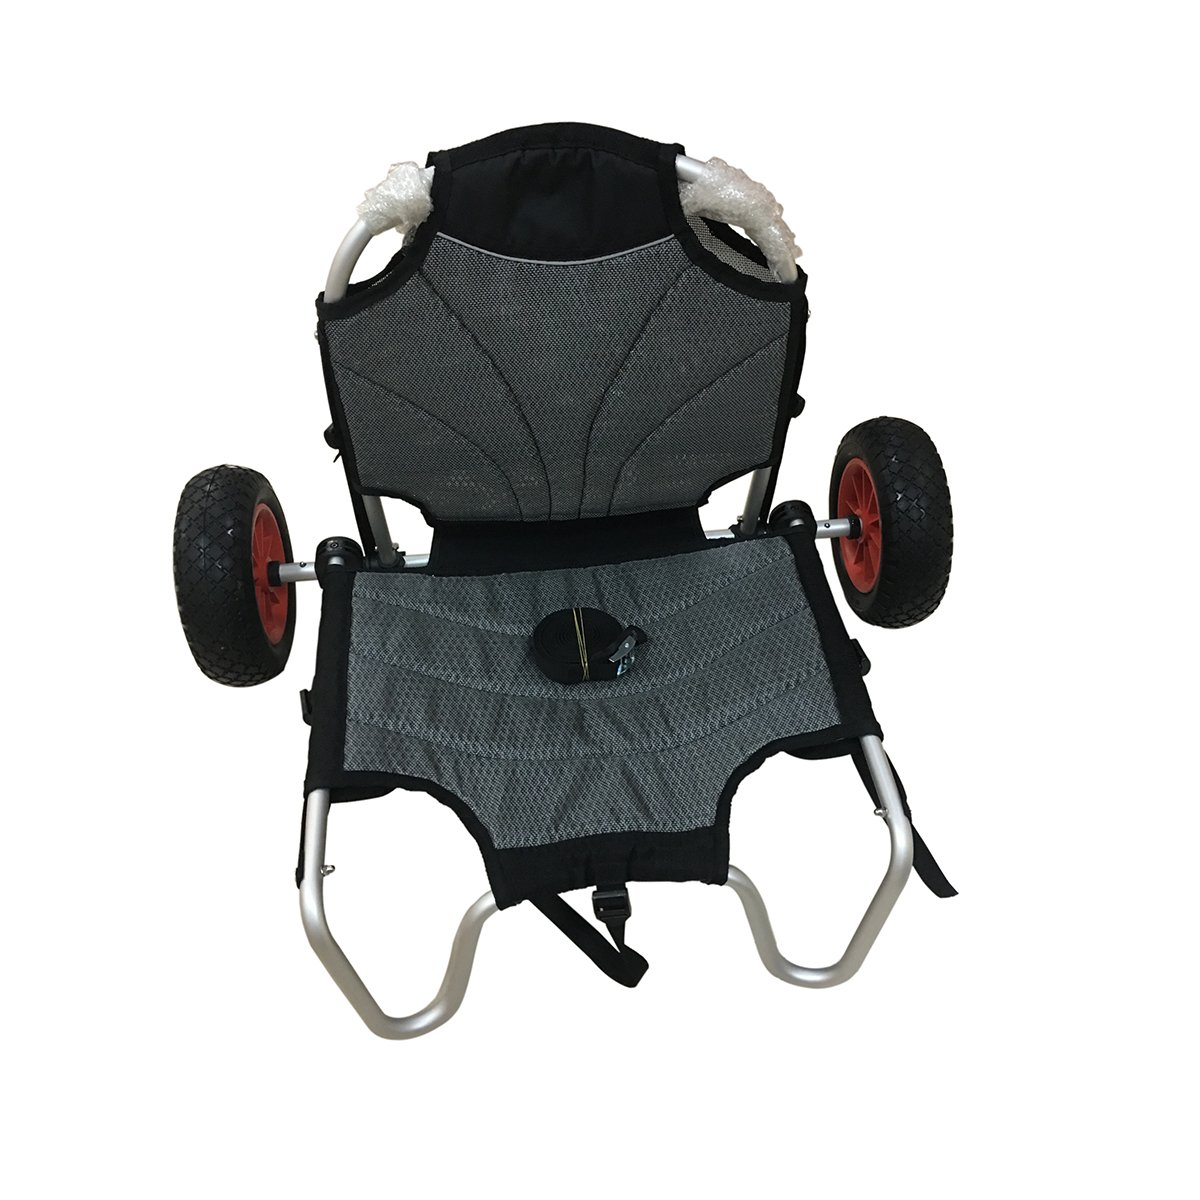 Amazon.com: liker 2 in1 Carrito para kayak con aluminio ...